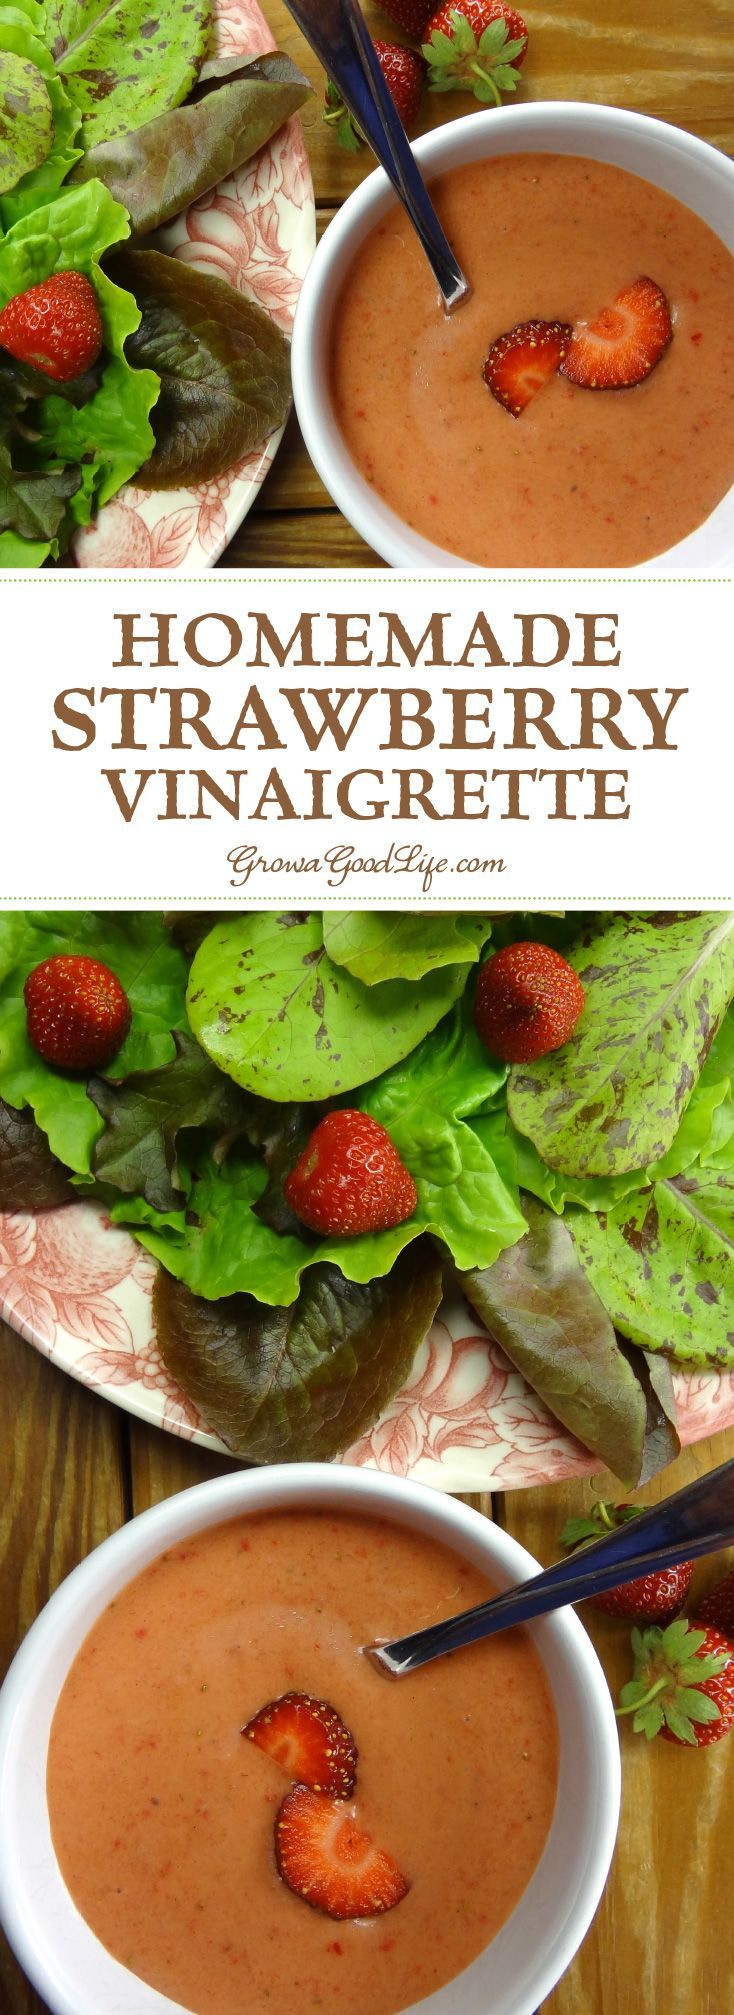 With just a few simple ingredients, this strawberry vinaigrette salad dressing is easy to whip up in a blender or food processor. Drizzle this tangy strawberry vinaigrette on freshly harvested salad greens or a mixed fruit salad. It also pairs well with robust greens such as chard, chicory, collards, kale, mustard, and spinach.